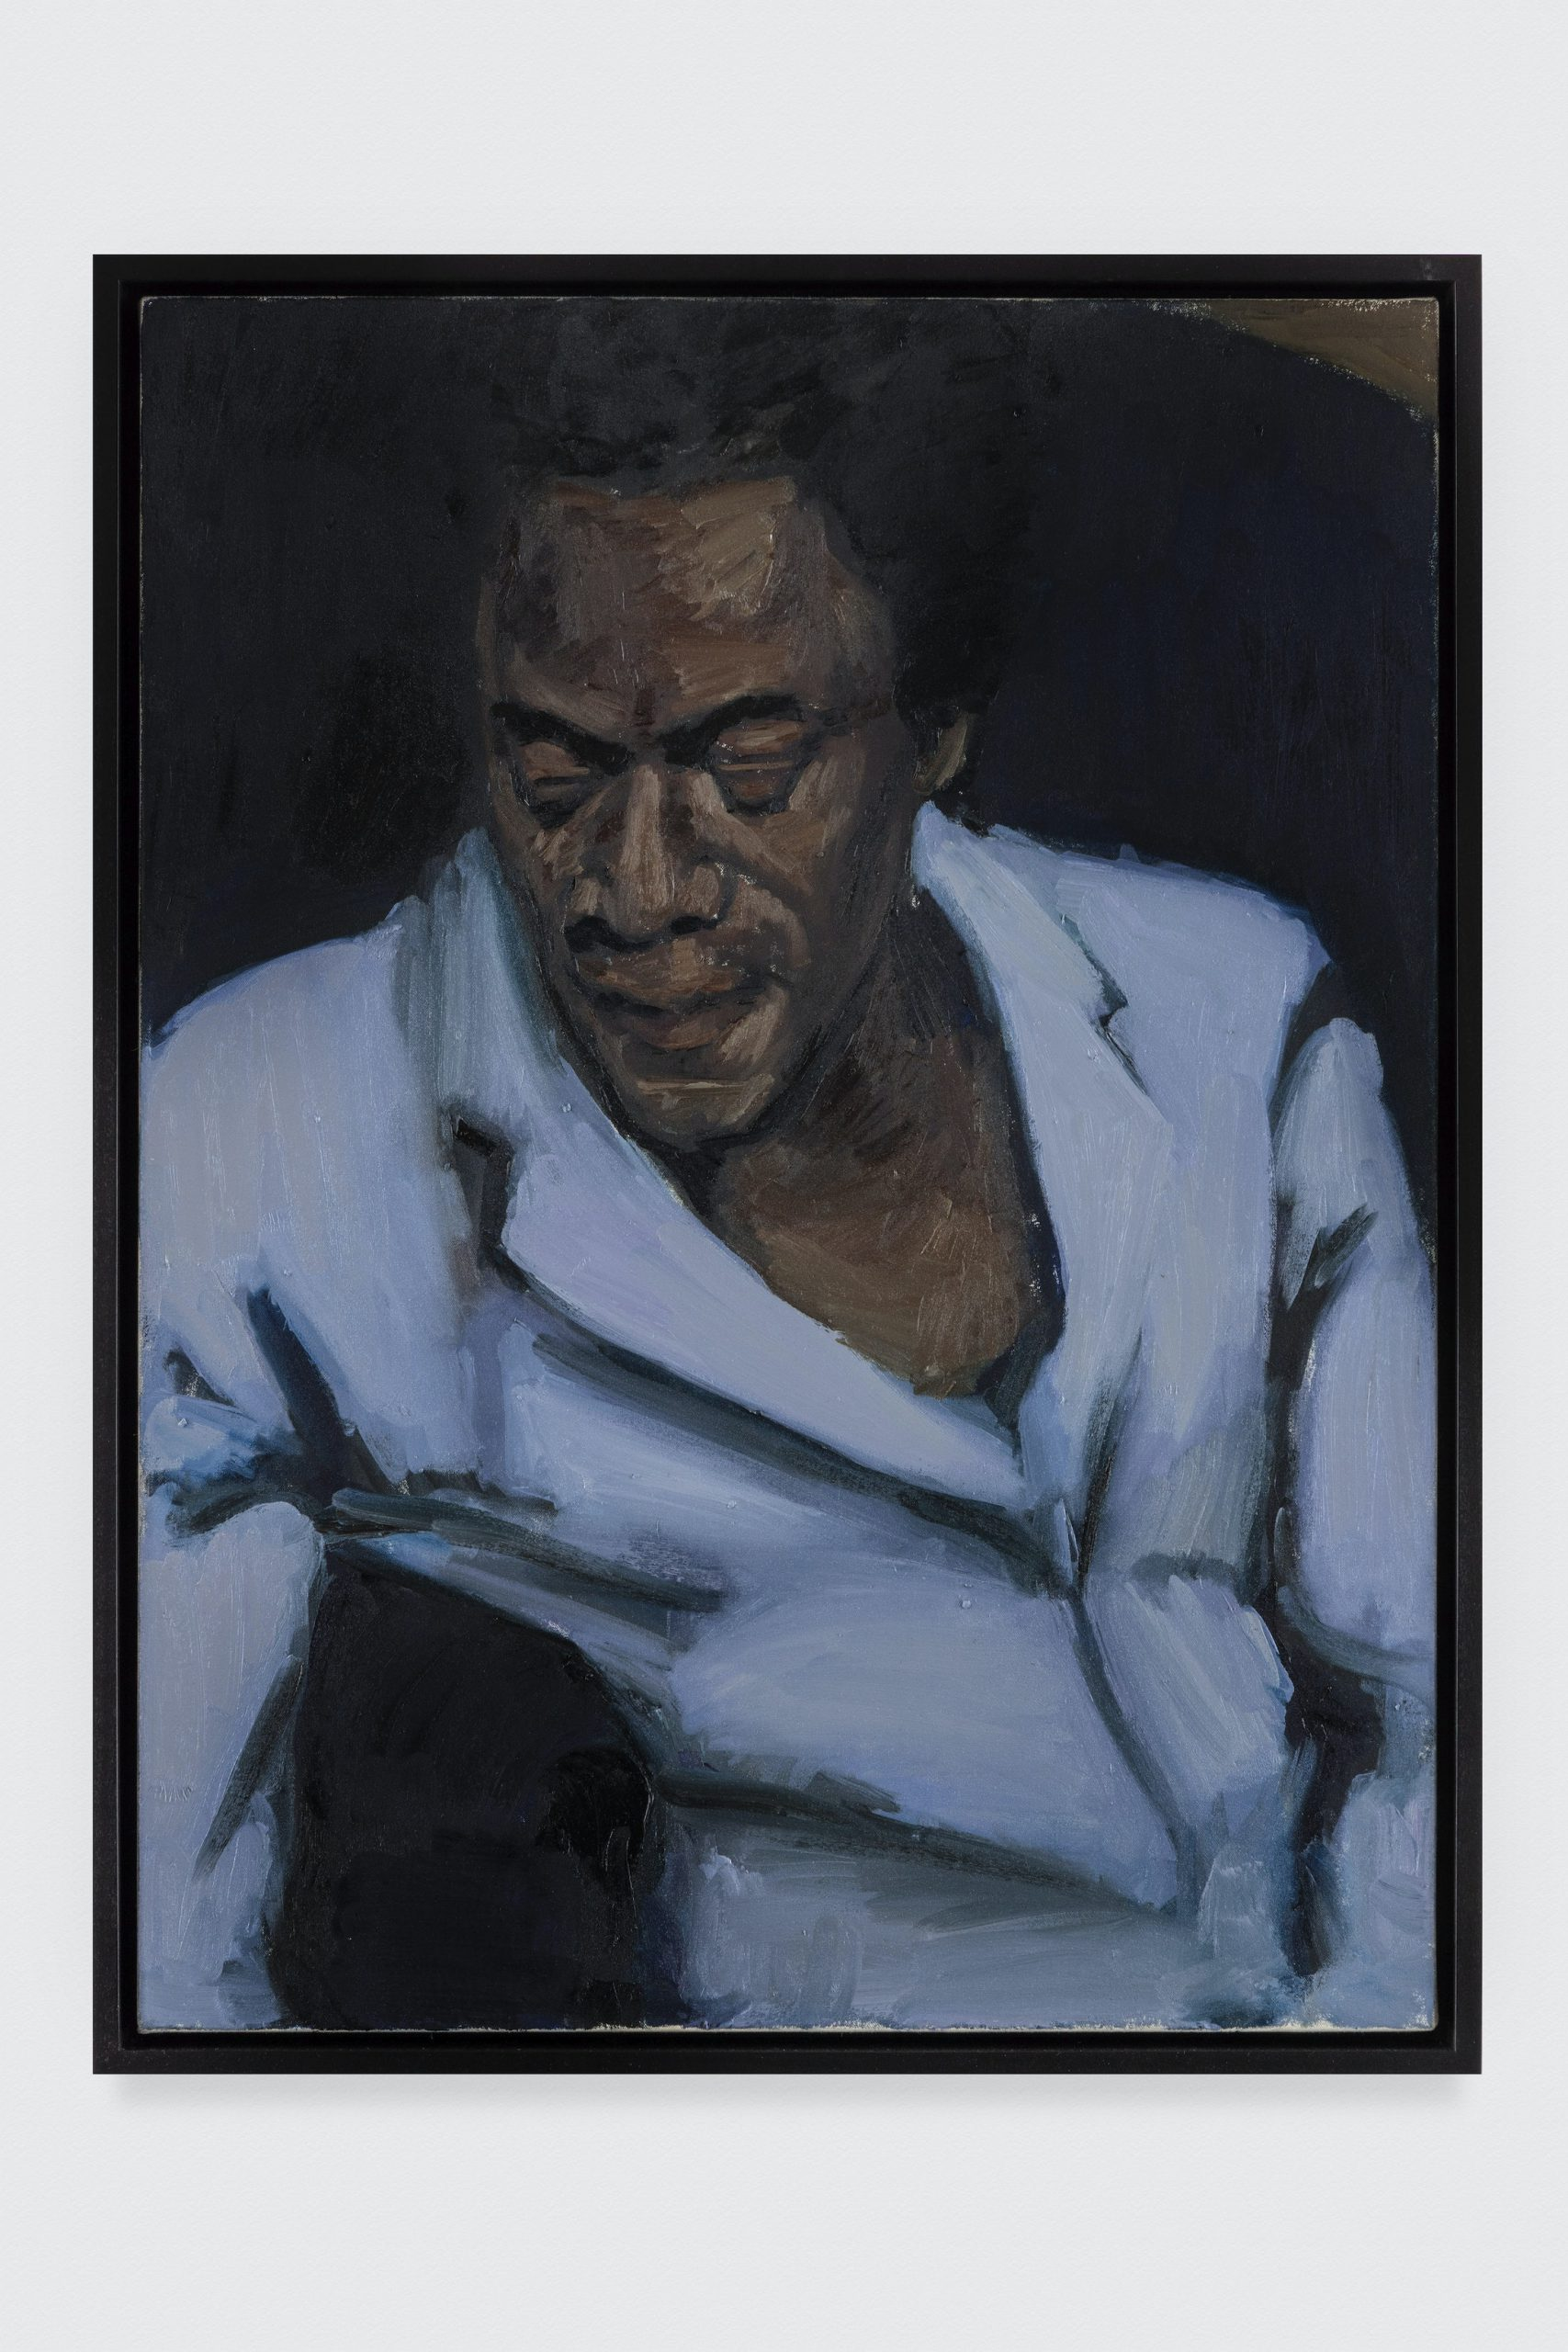 Lynette Yiadom-Boakye. Carpal Tunneller, 2013. Oil on canvas. 31 1/2 x 23 5/8 in. © Lynette Yiadom-Boakye. Courtesy of the artist, Jack Shainman Gallery, New York and Corvi-Mora, London. The Eileen Harris Norton Collection. Photo: Charles White.